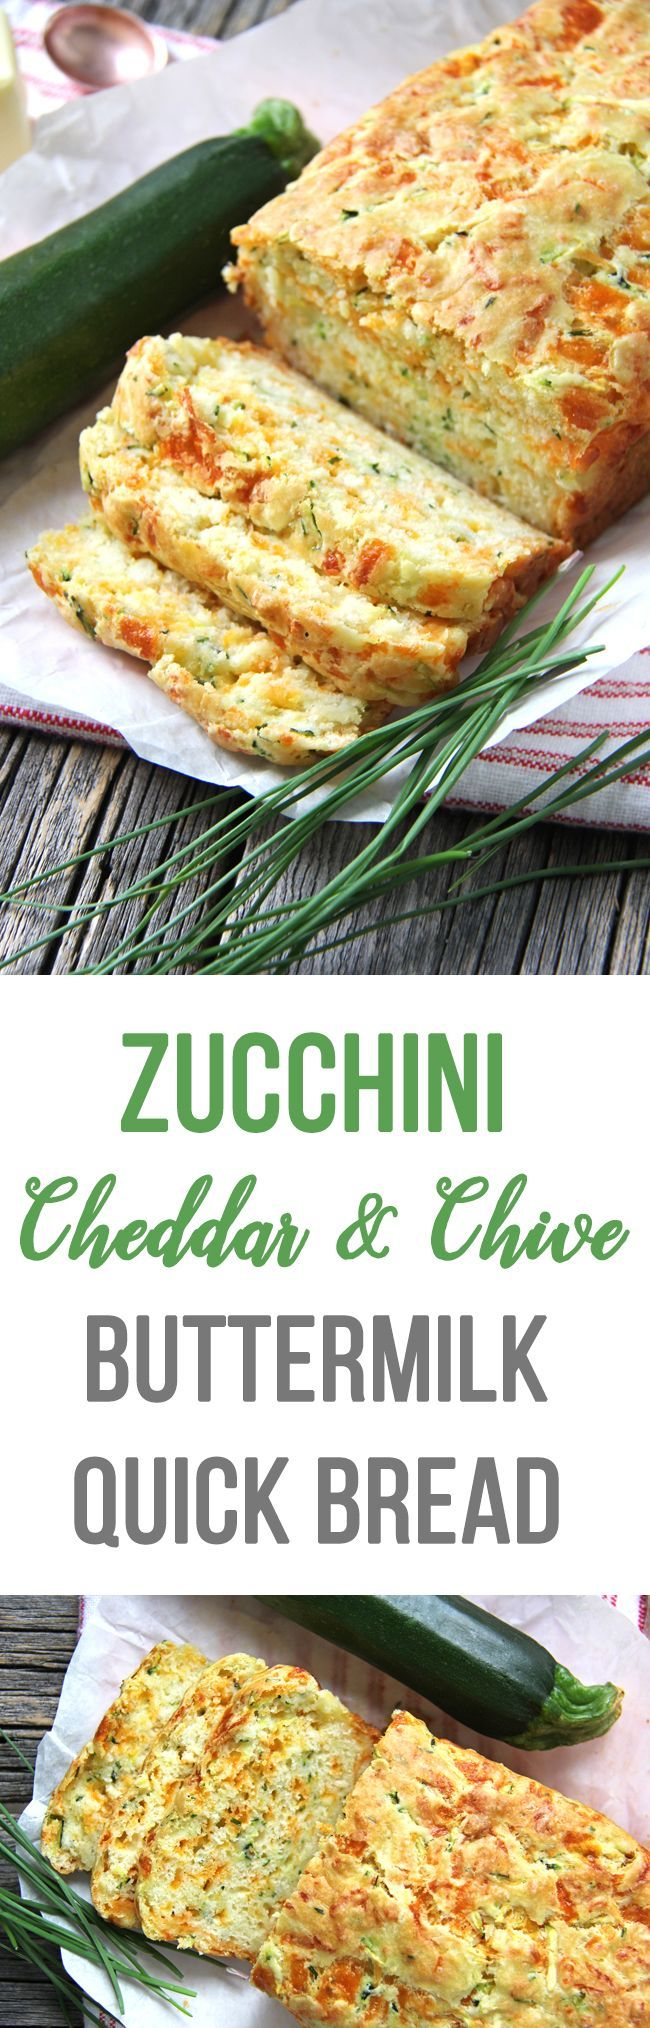 Zucchini Cheddar and Chive Buttermilk Quick Bread